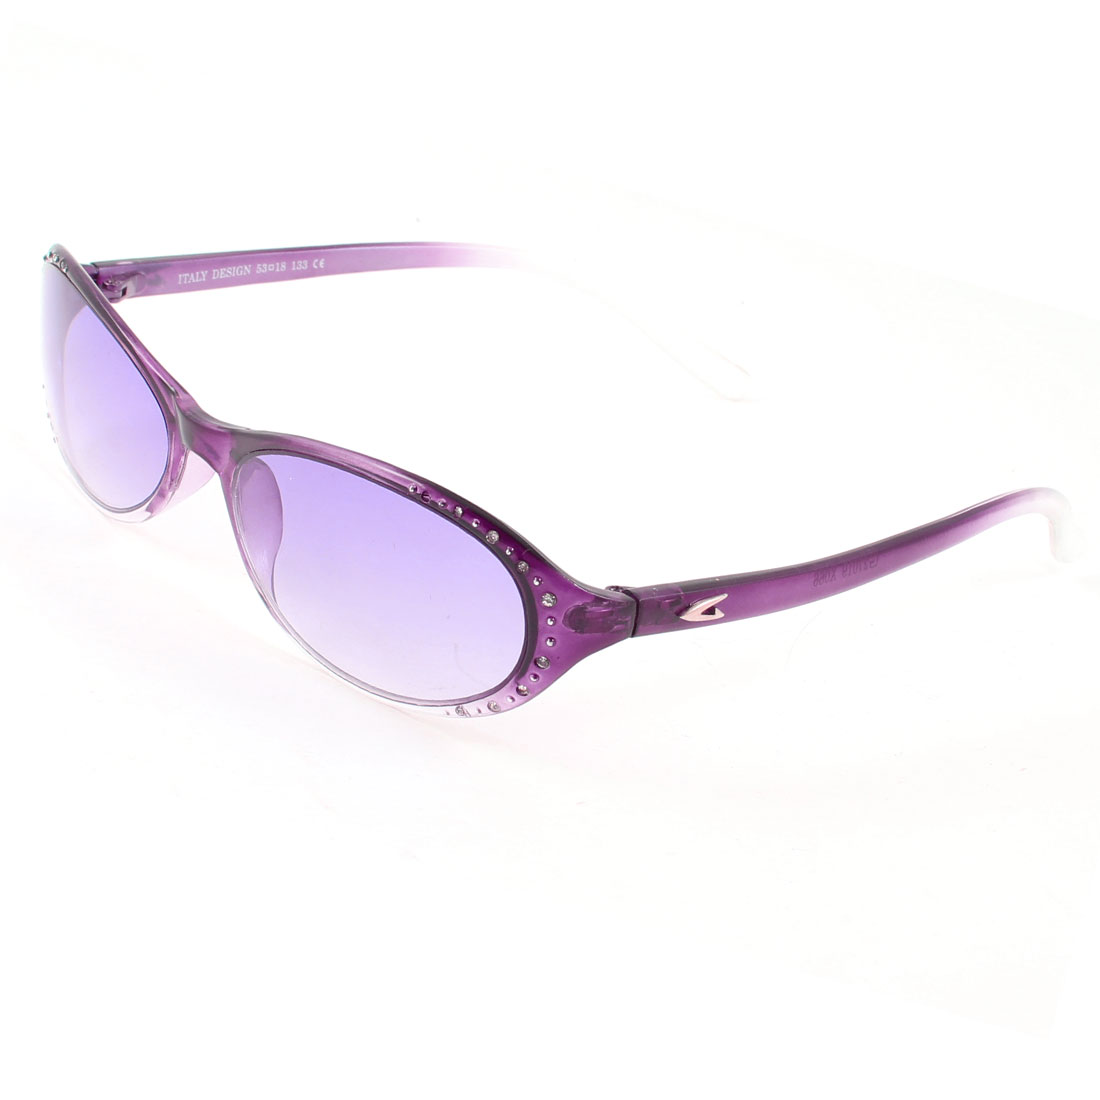 Purple Plastic Frame Full Rim Single Bridge Sunglasses for Women